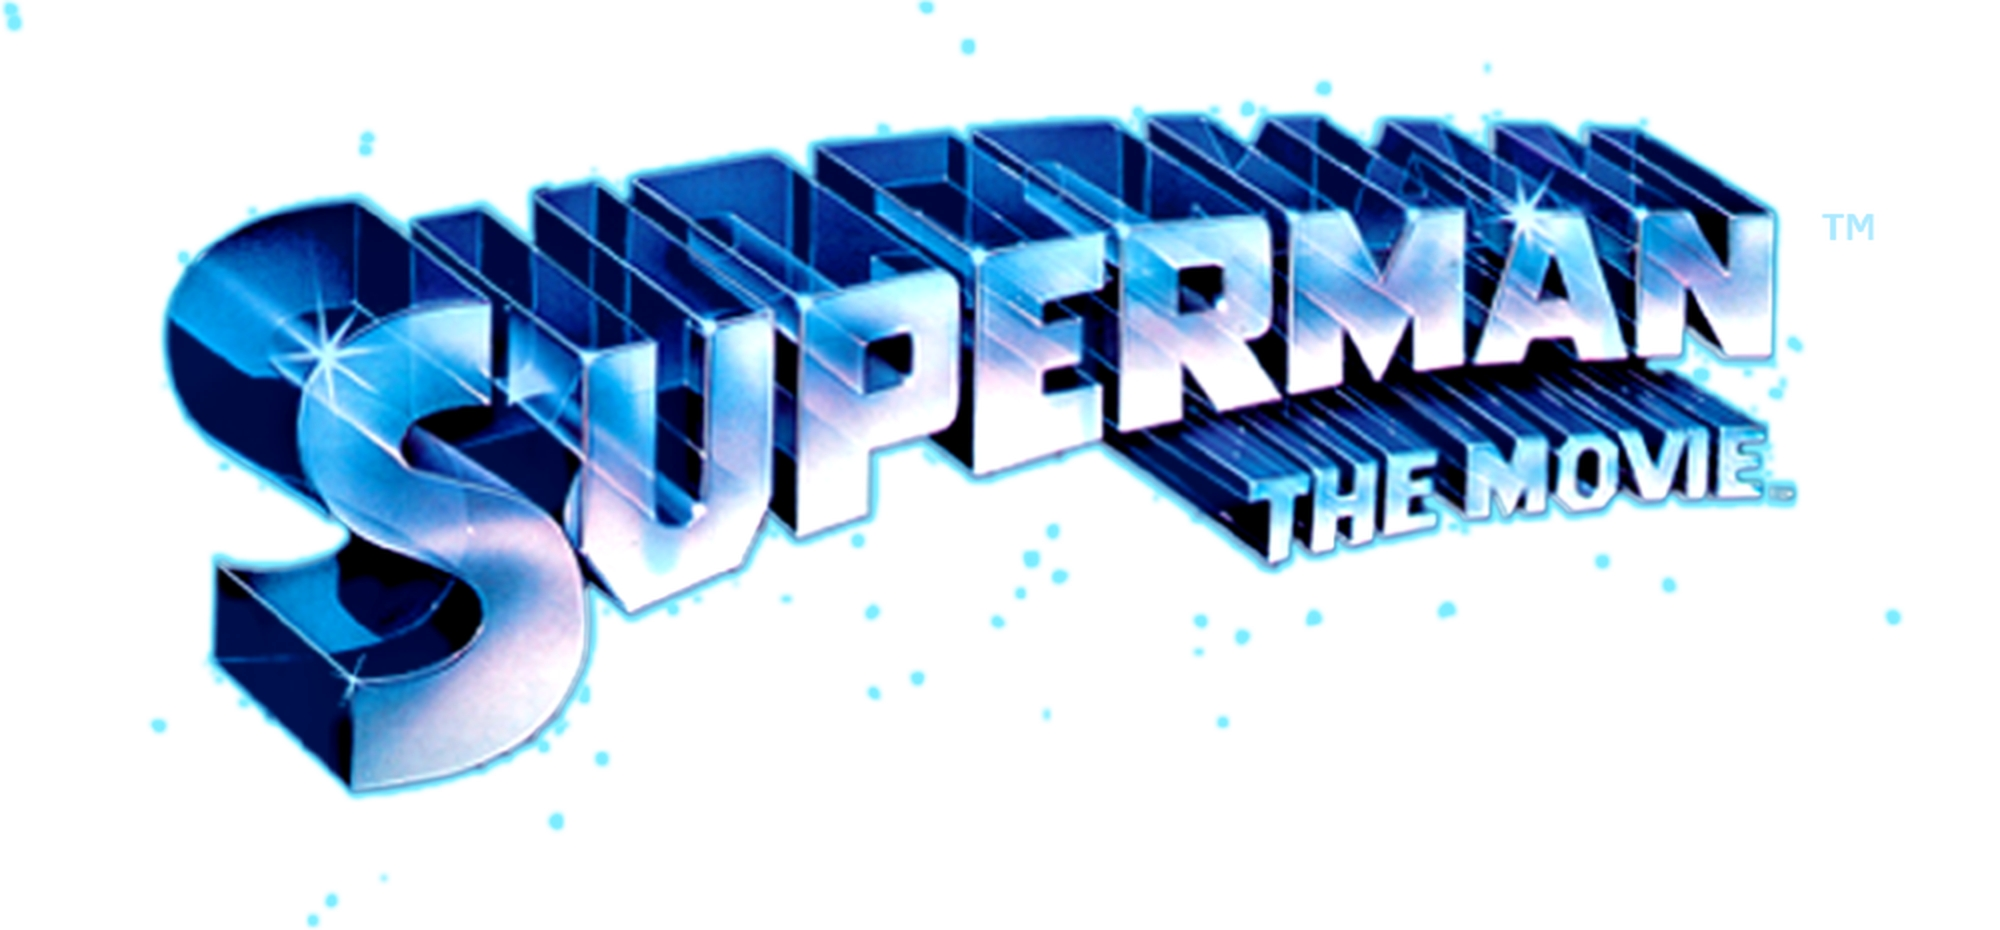 Se Superman The Movie Online Slot Demo Game, Playtech